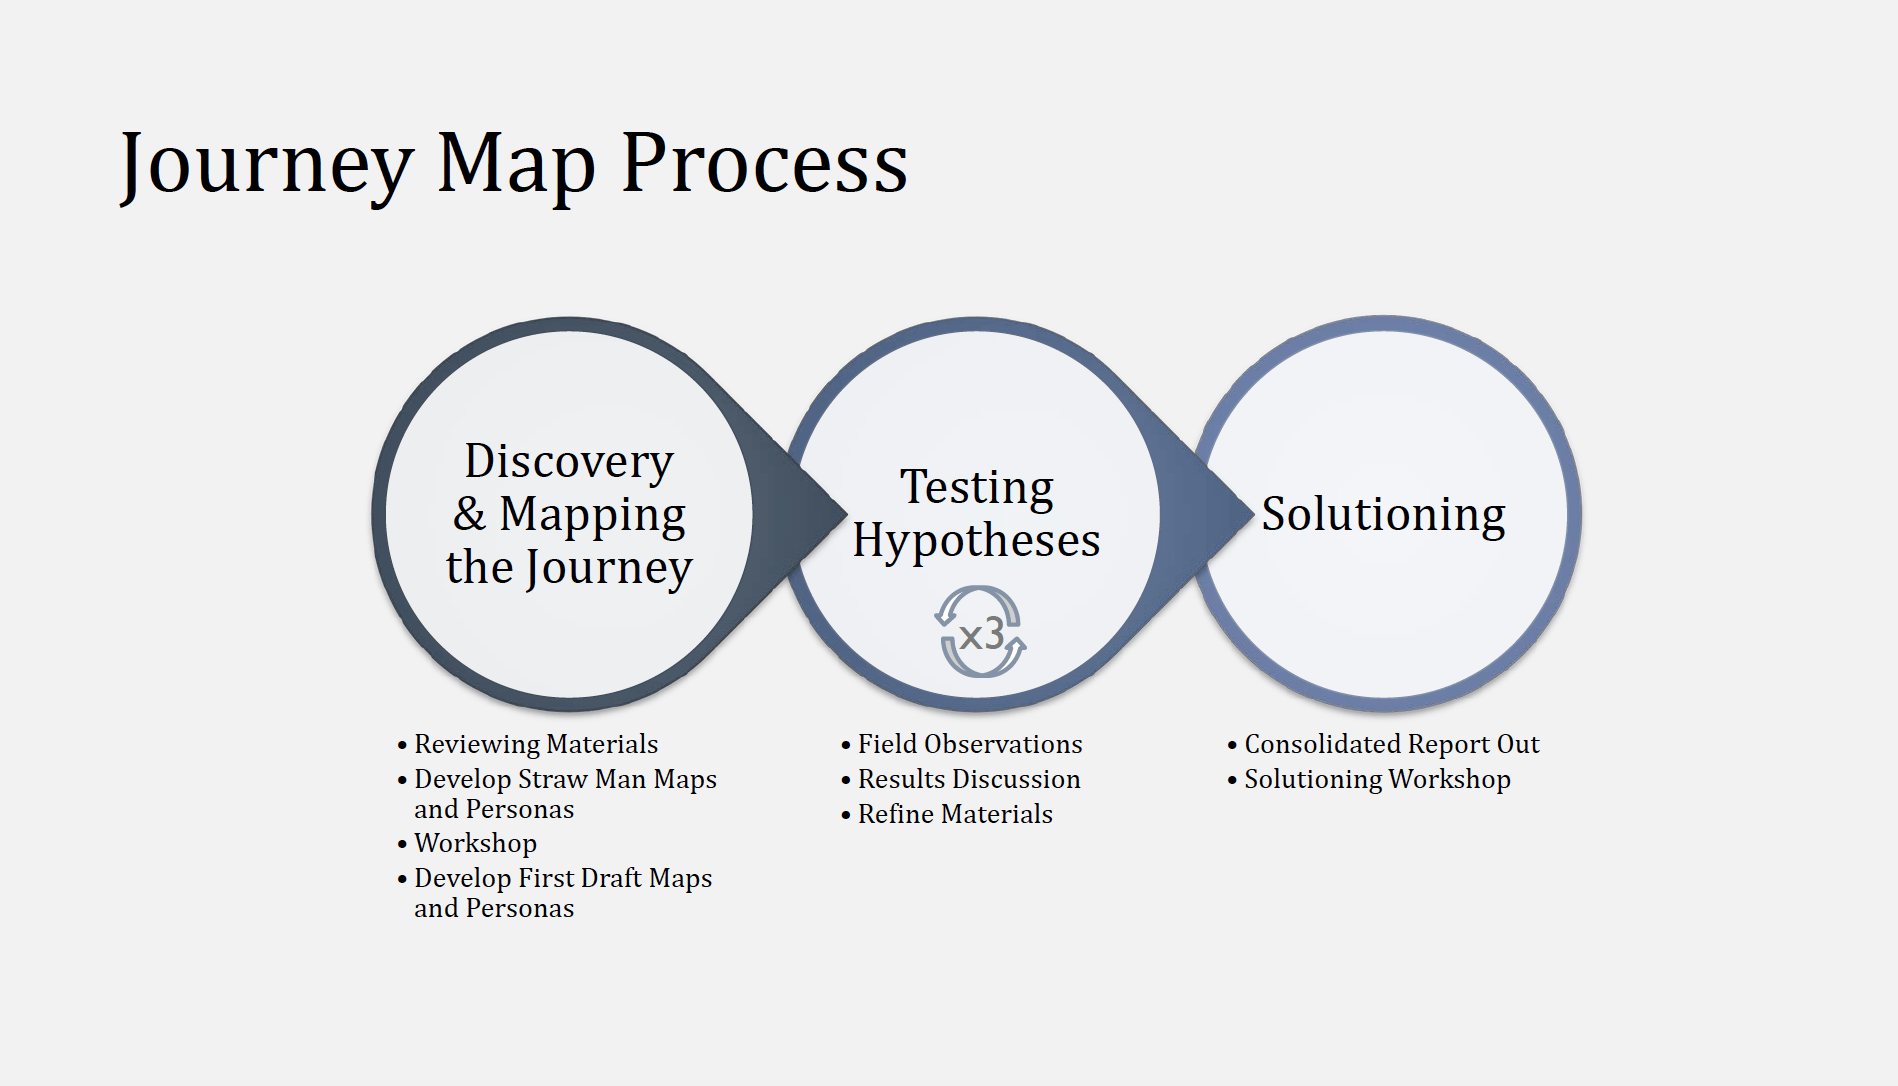 Journey map process